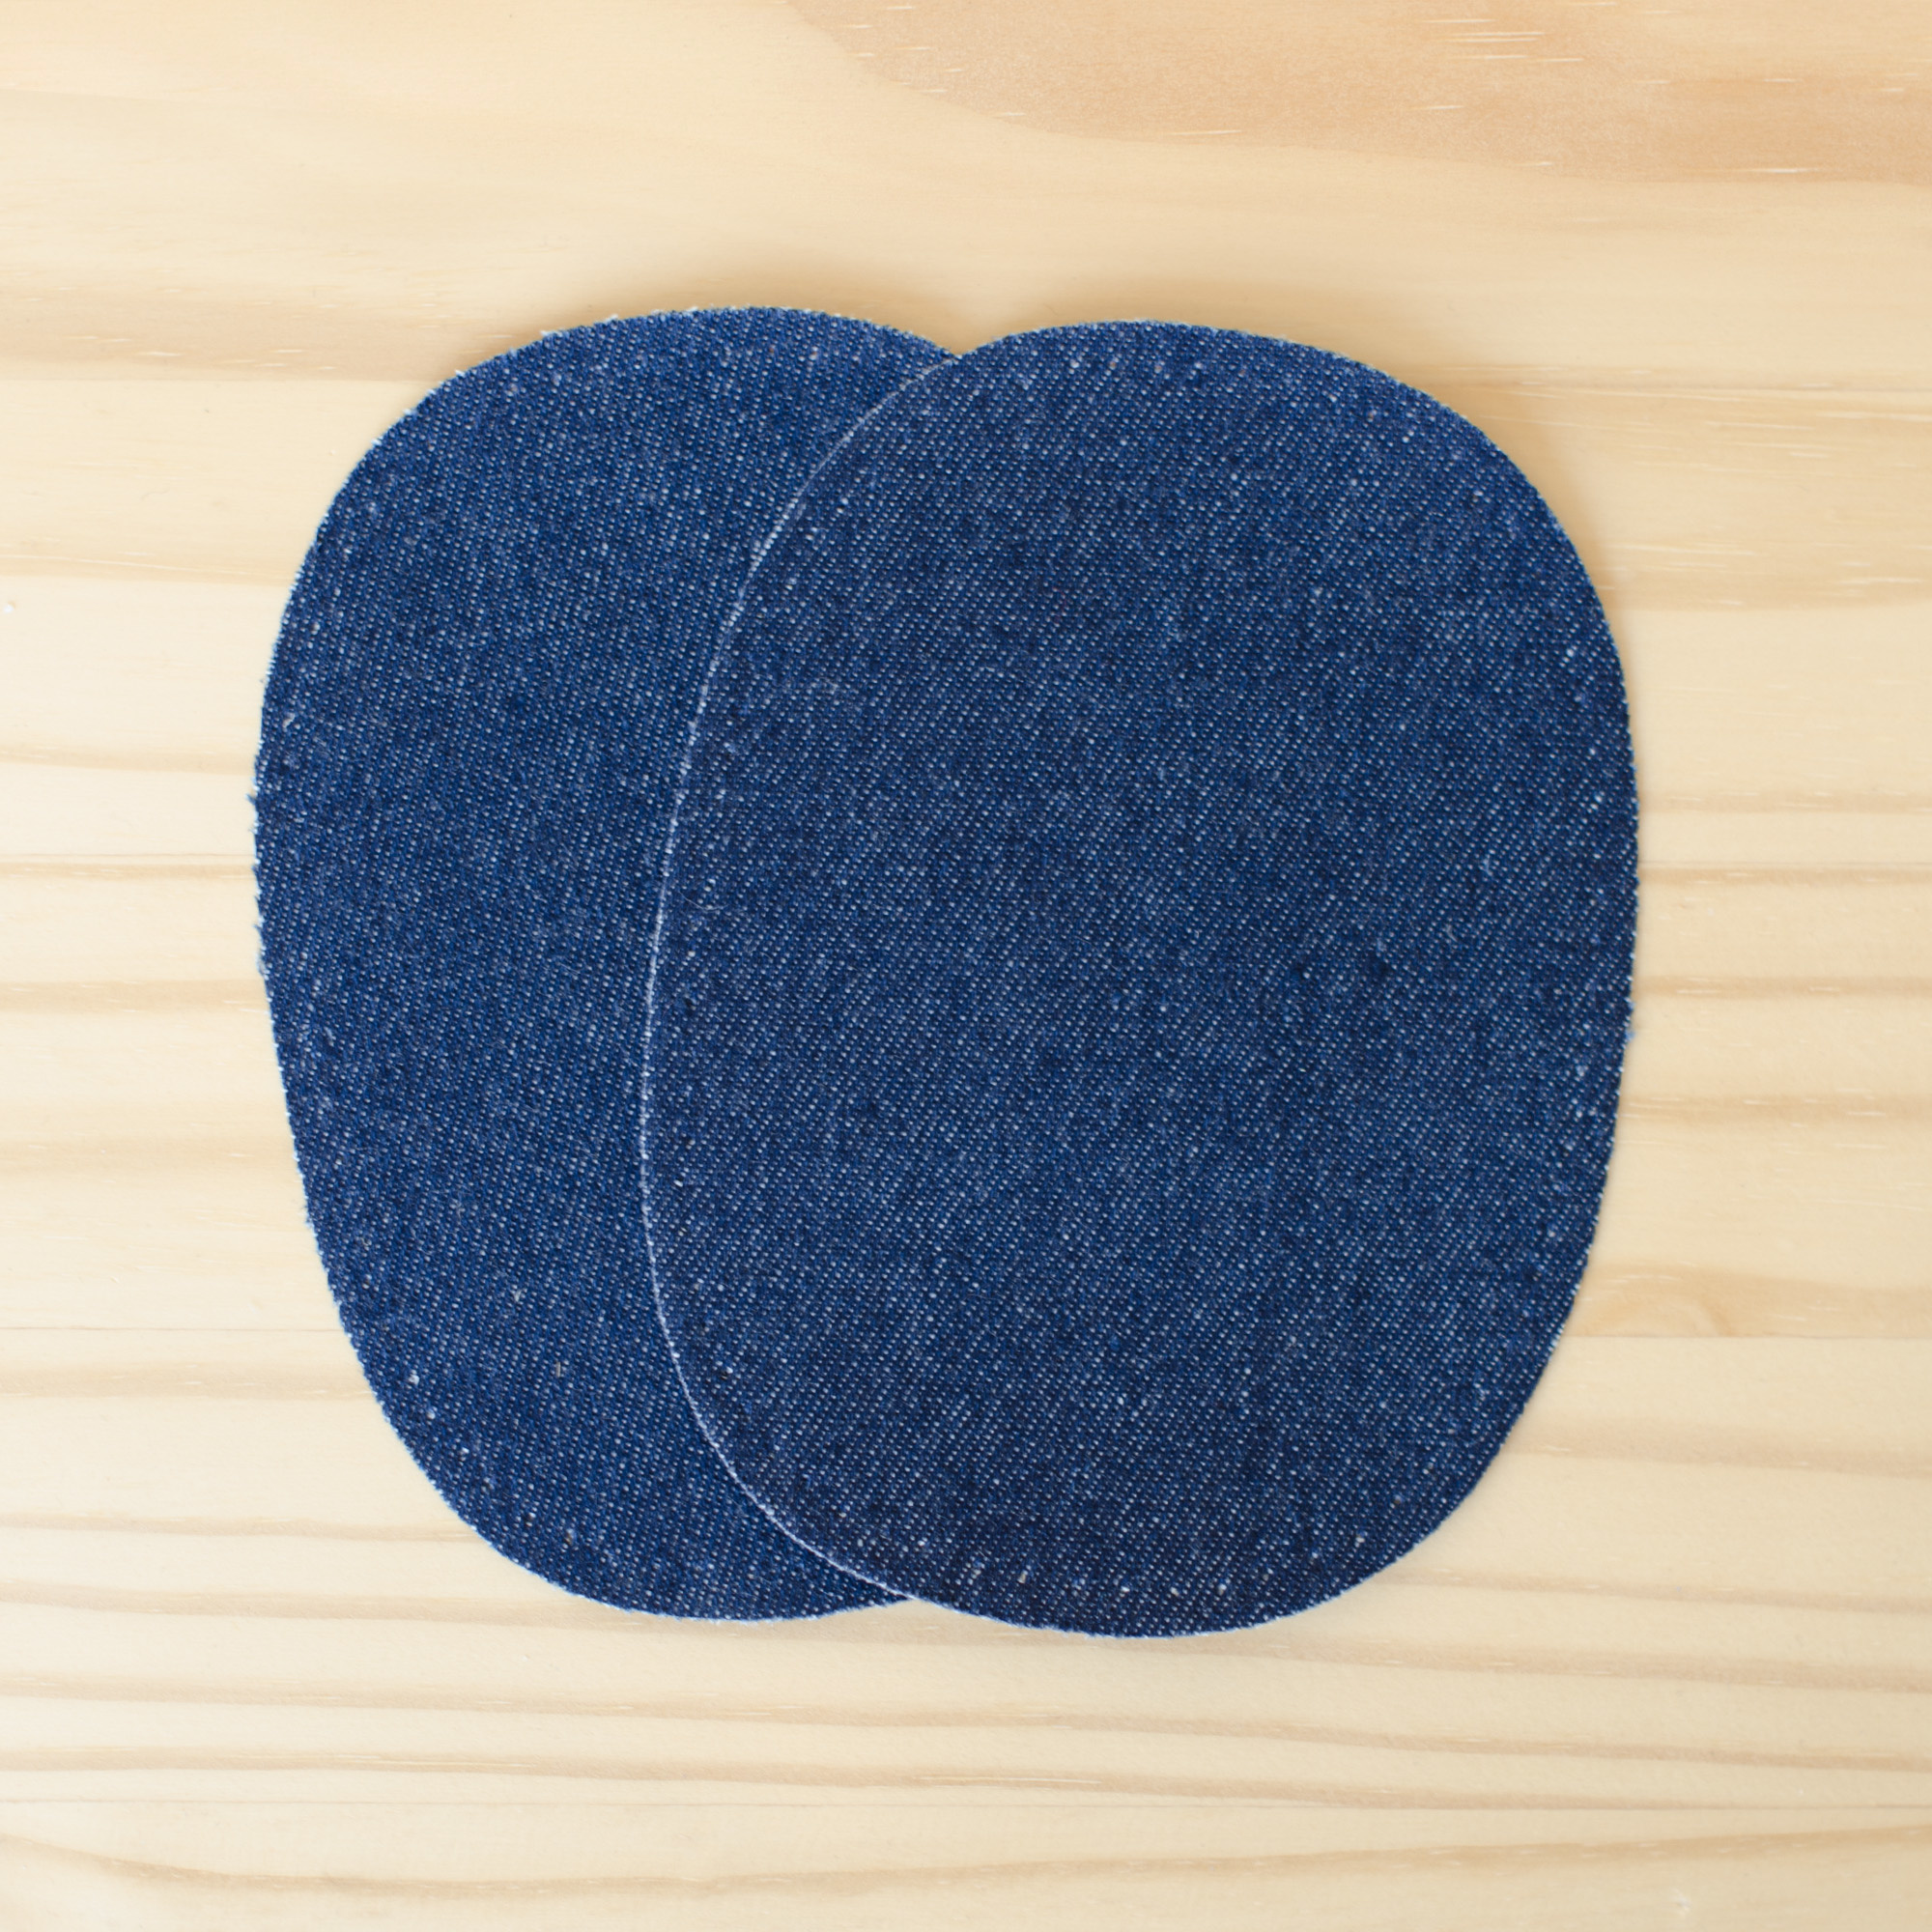 Prym : Dark Blue Denim Patches : 2 count